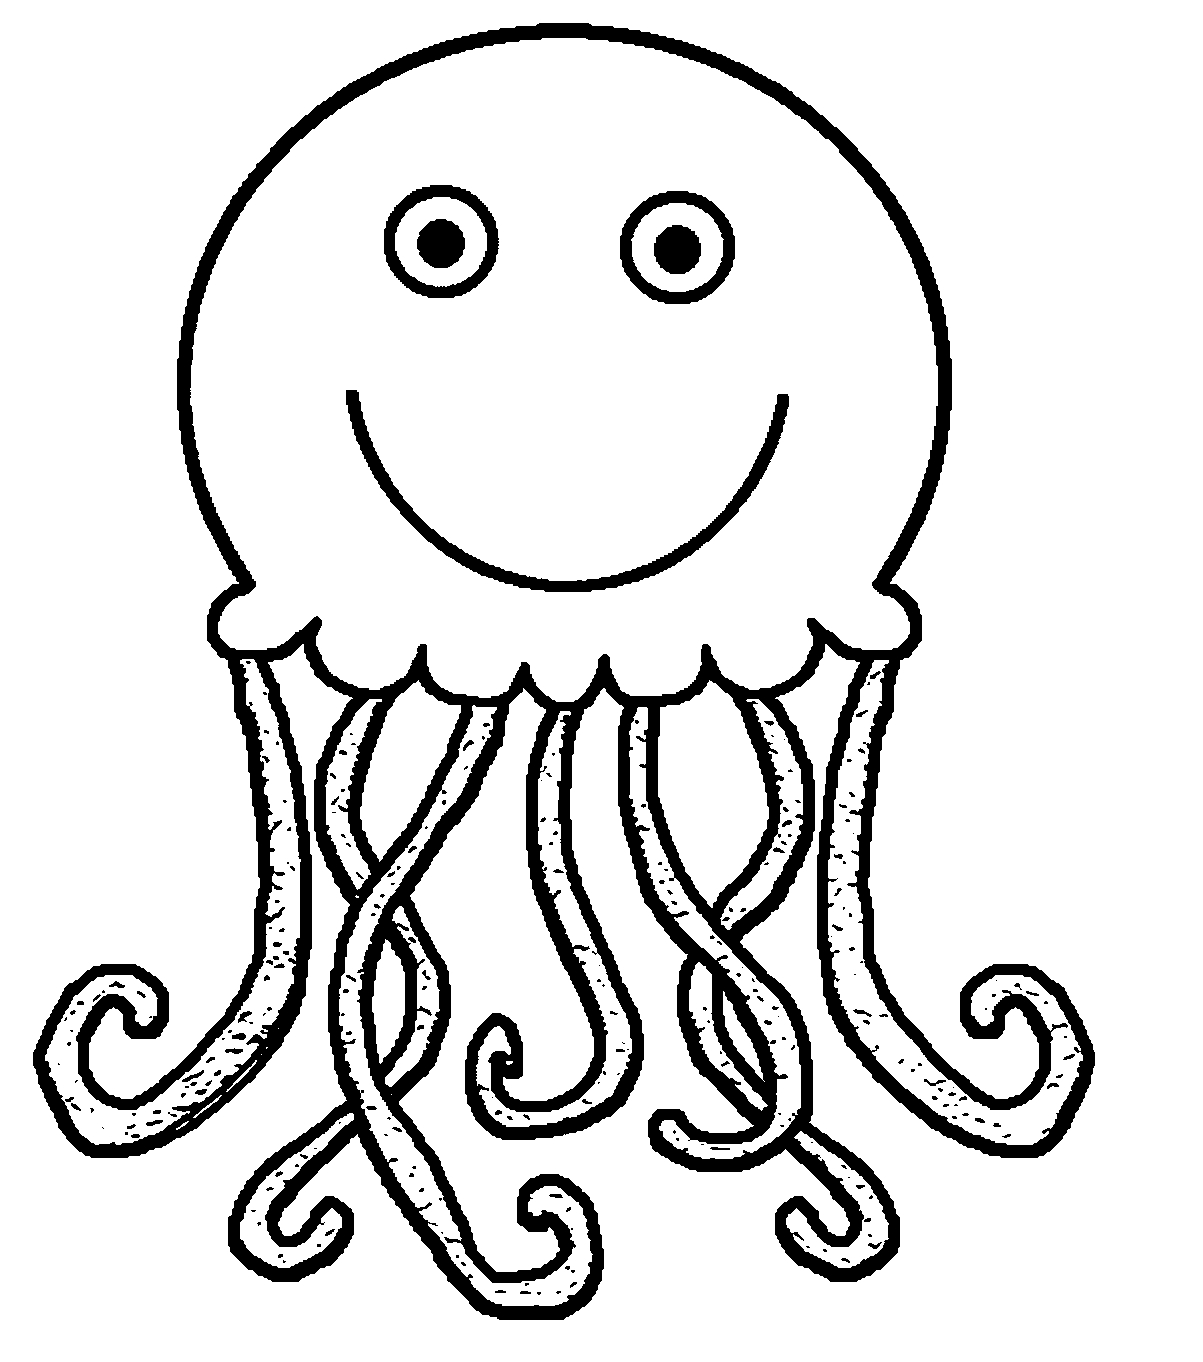 snowflake coloring page - black and white jellyfish clipart